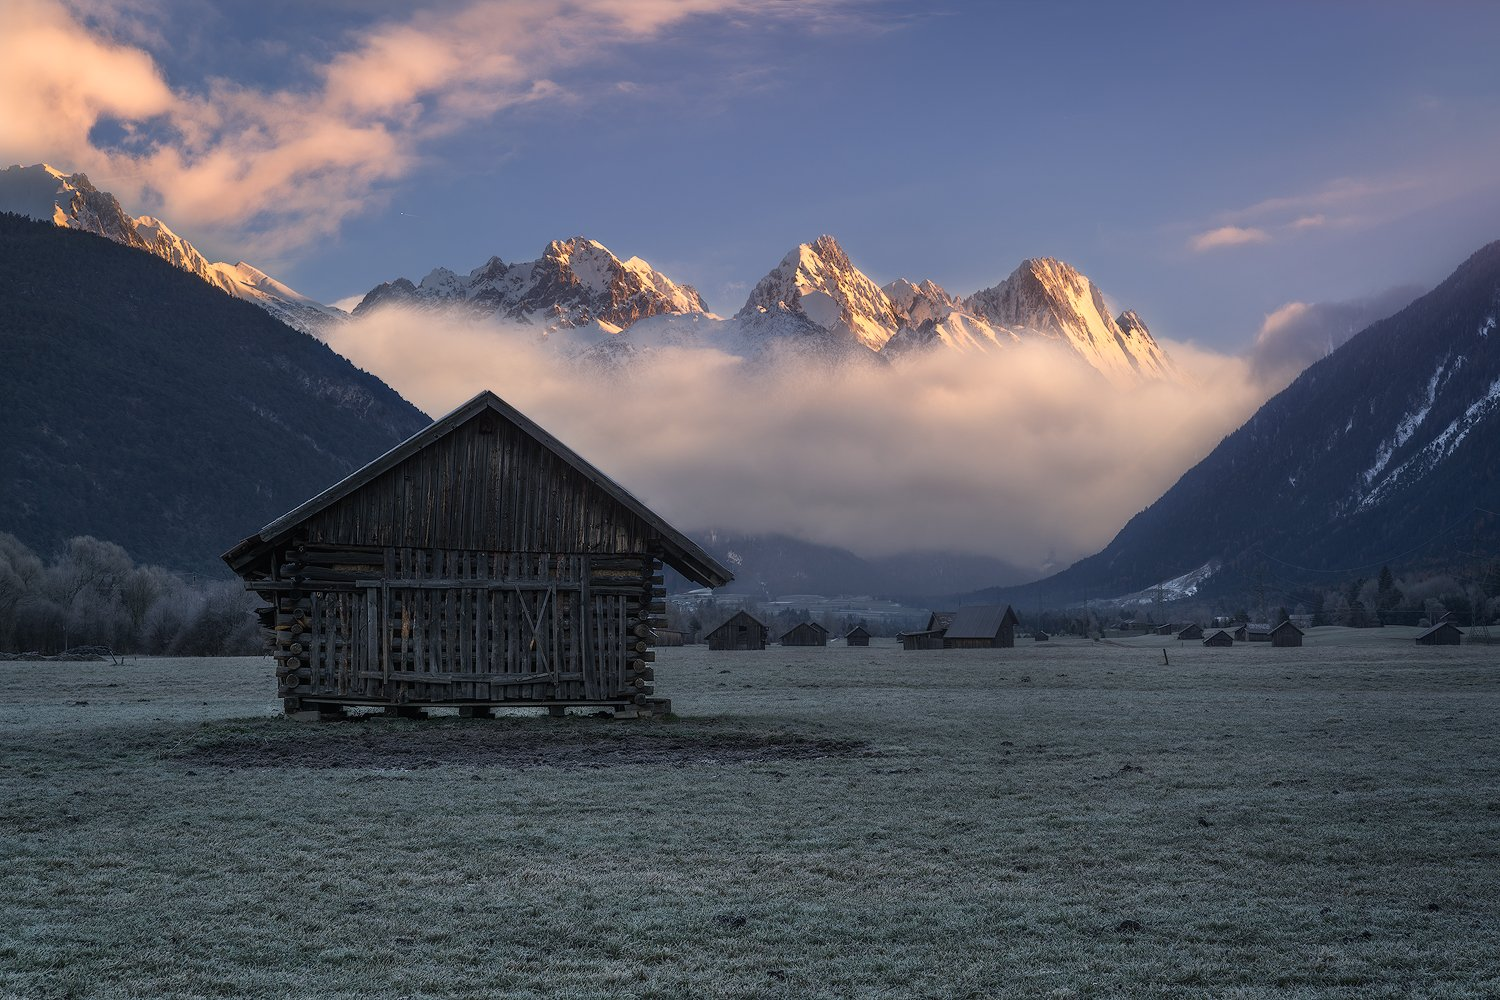 acres, agicutural building, agriculture, alps, austria, austrian alps, barns, clouds, farmhouse, fog, foggy, forest, frost, frosty, gurgltal, hey barns, hill, hills, houses, hovel, huts, imst, landscape, log cabin, meadows, morning, morning glow, moulton , Ludwig Riml